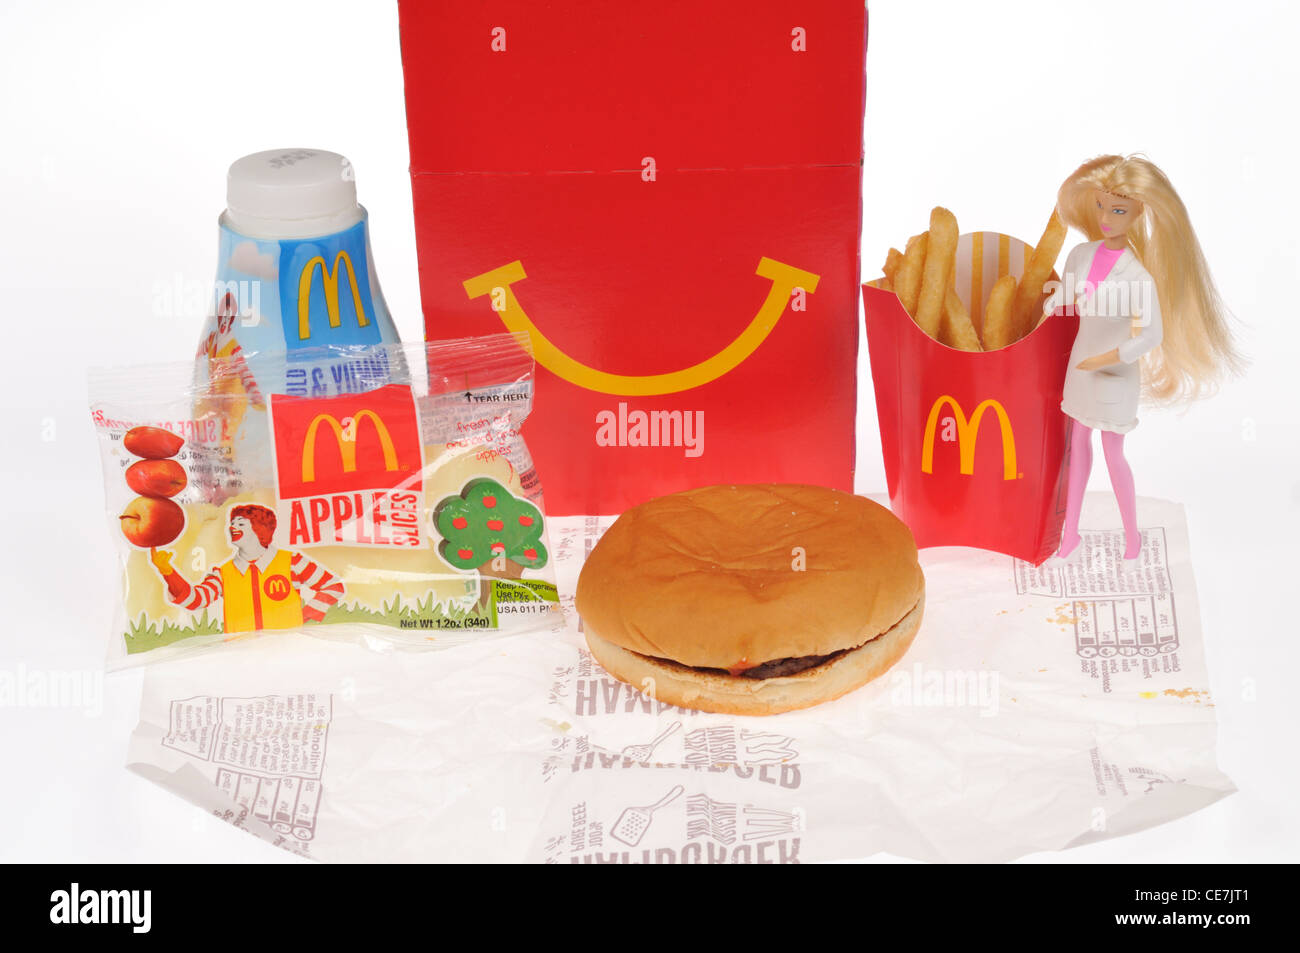 McDoanld's Girls Happy Meal with a hamburger, french fries, milk and apple dippers, a Barbie doll toy & - Stock Image